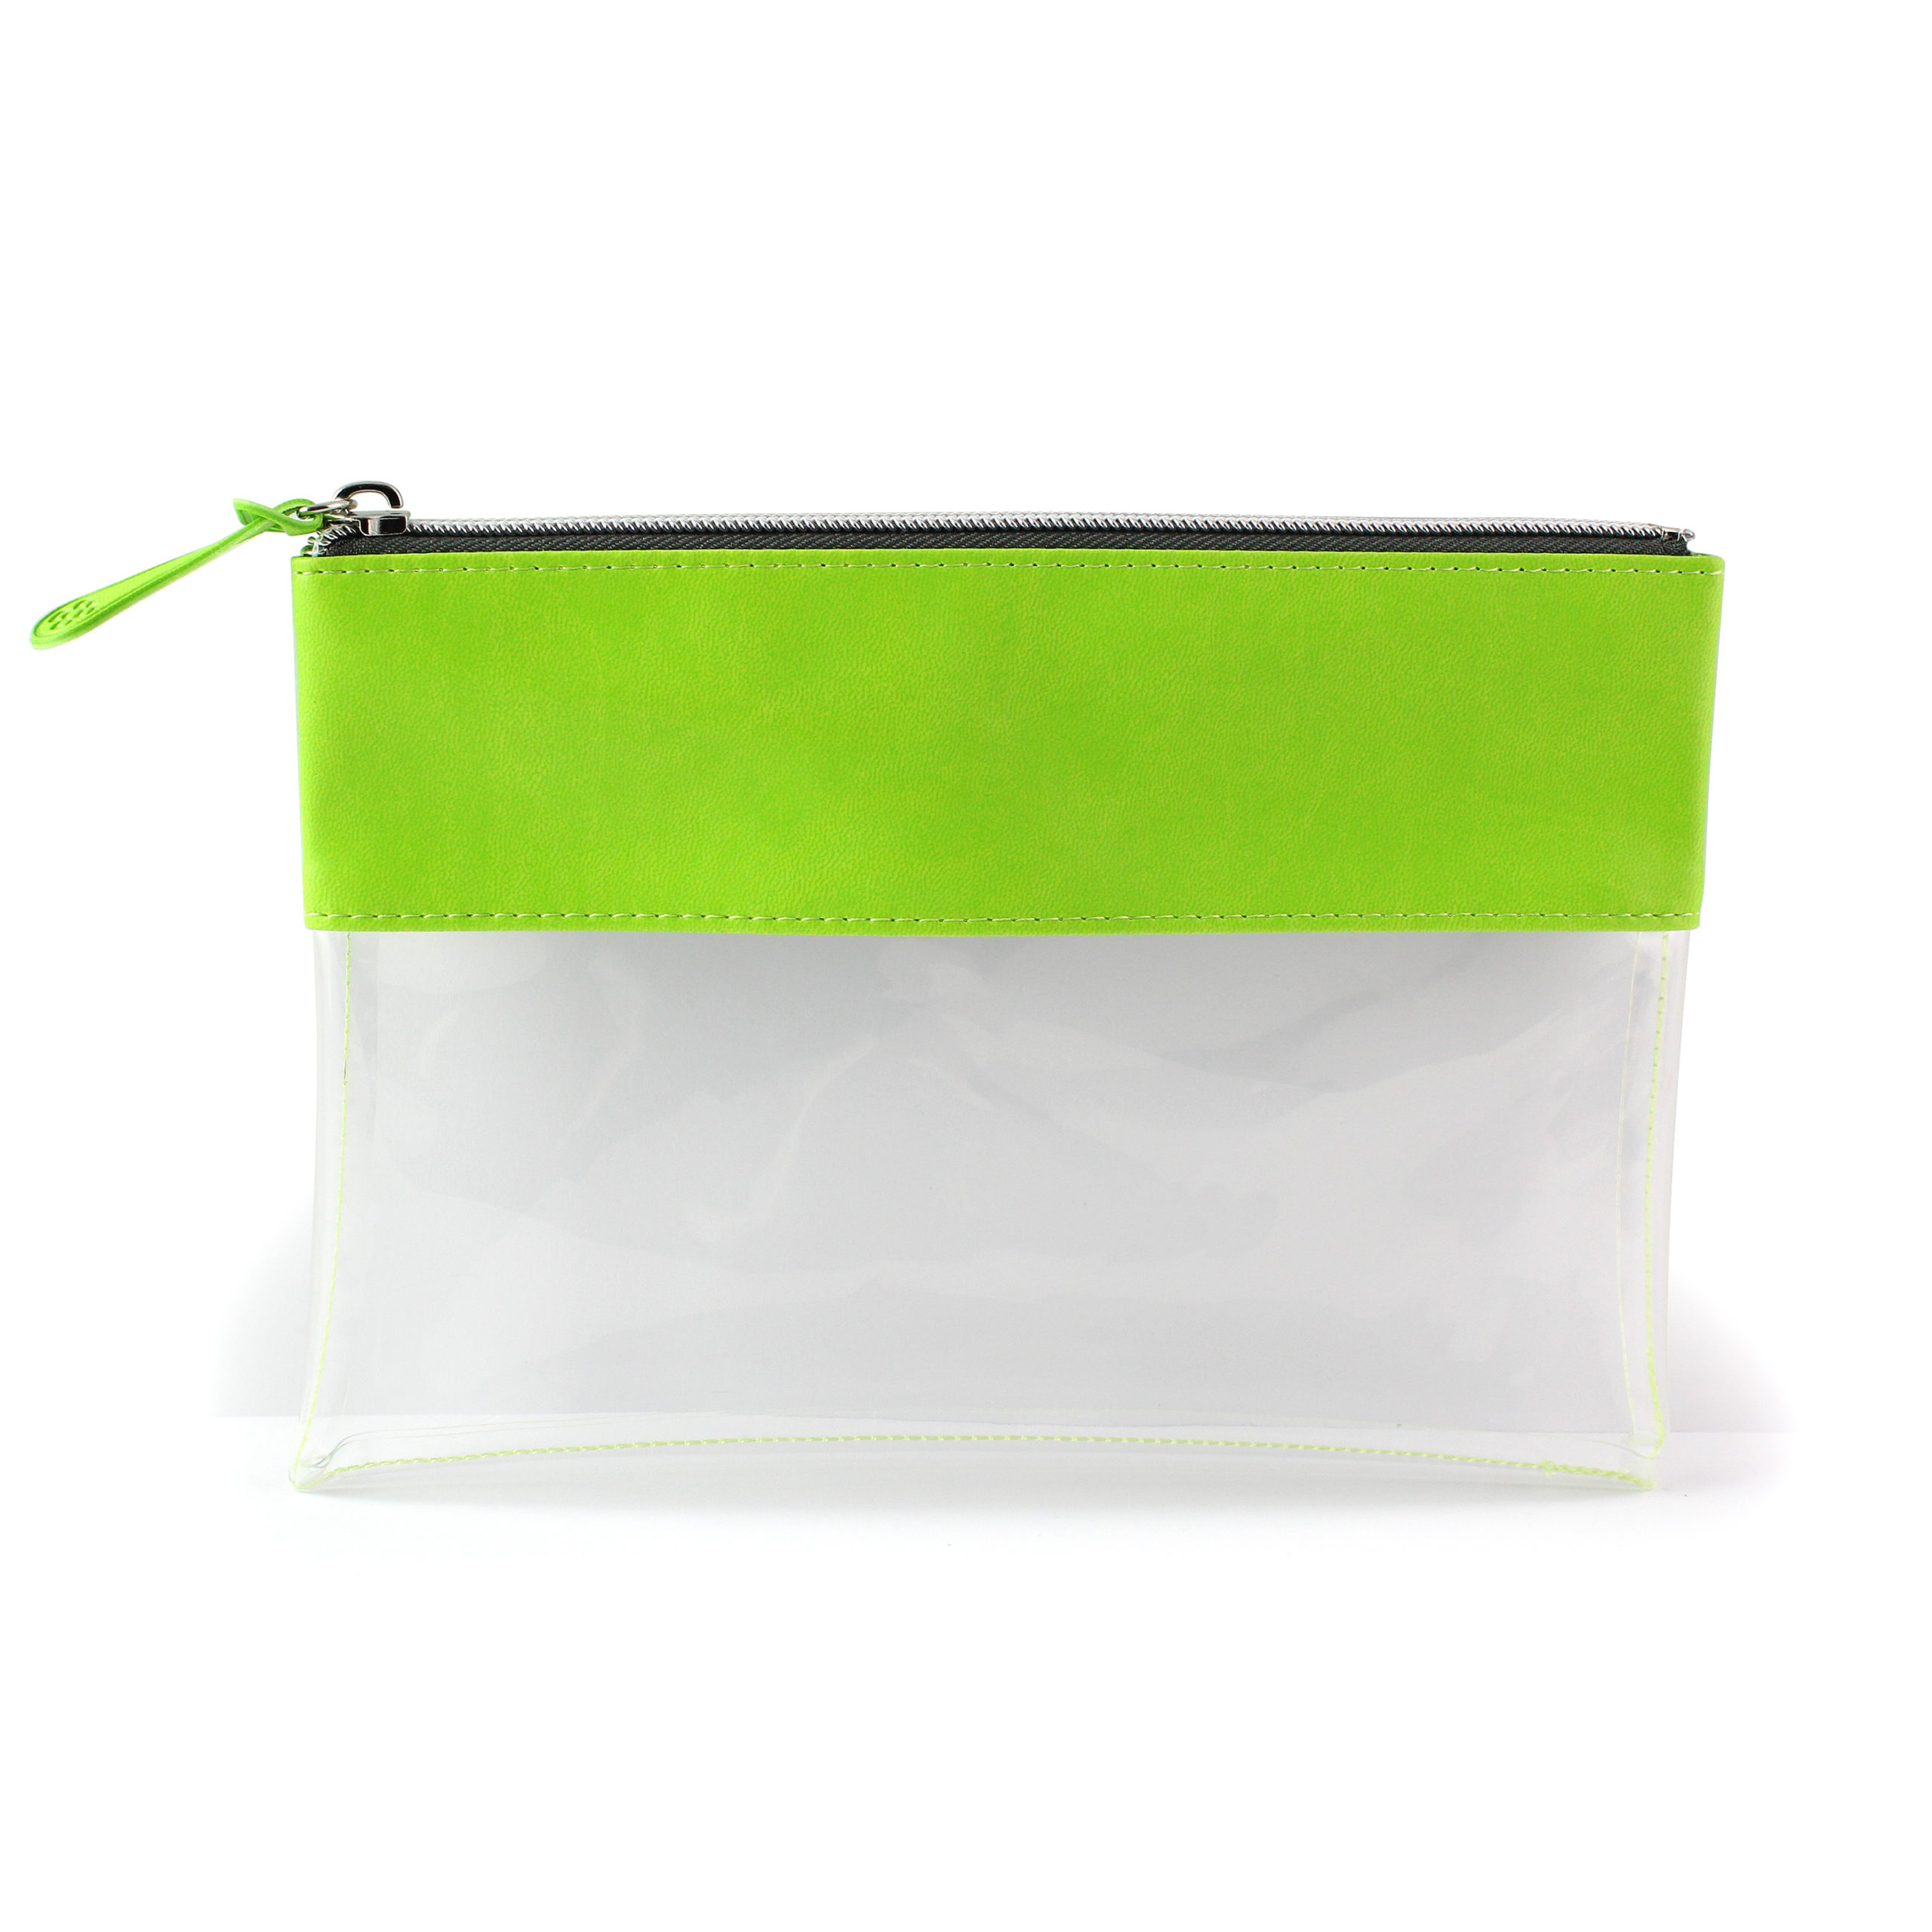 Pea Green Clear Pouch ideal as a travel pouch or pencil case.